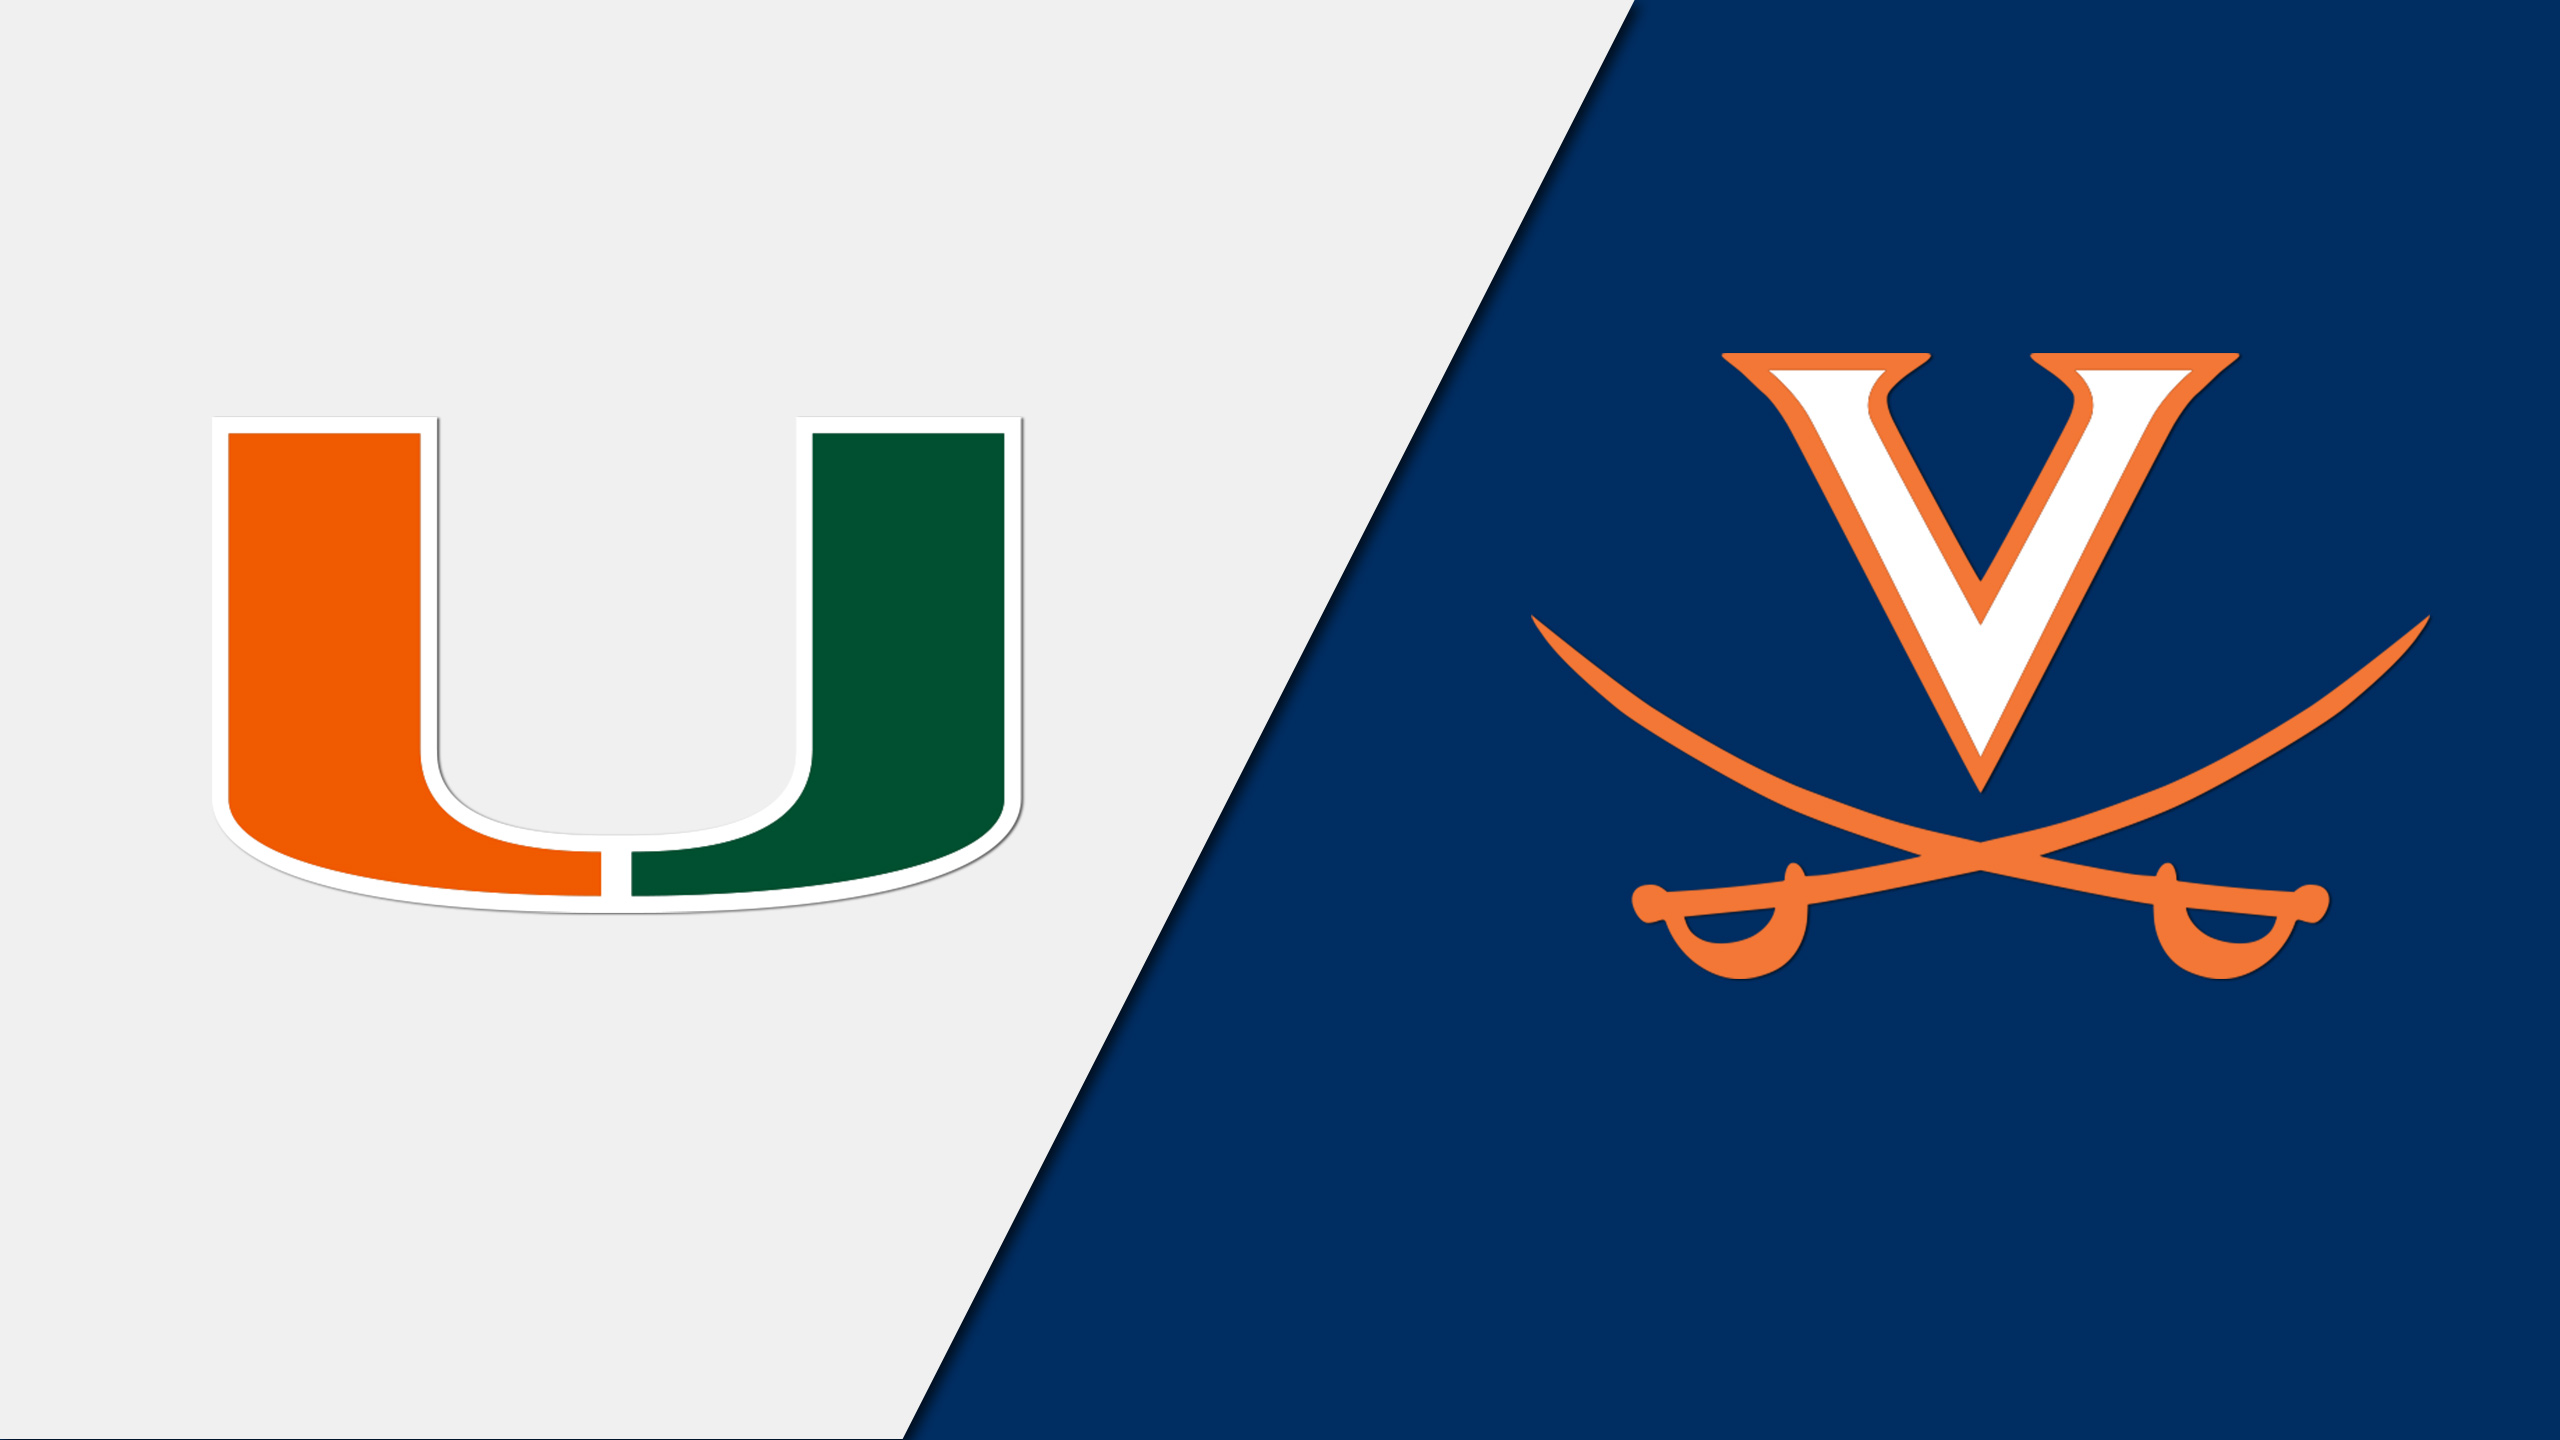 Miami vs. Virginia (Pool D)